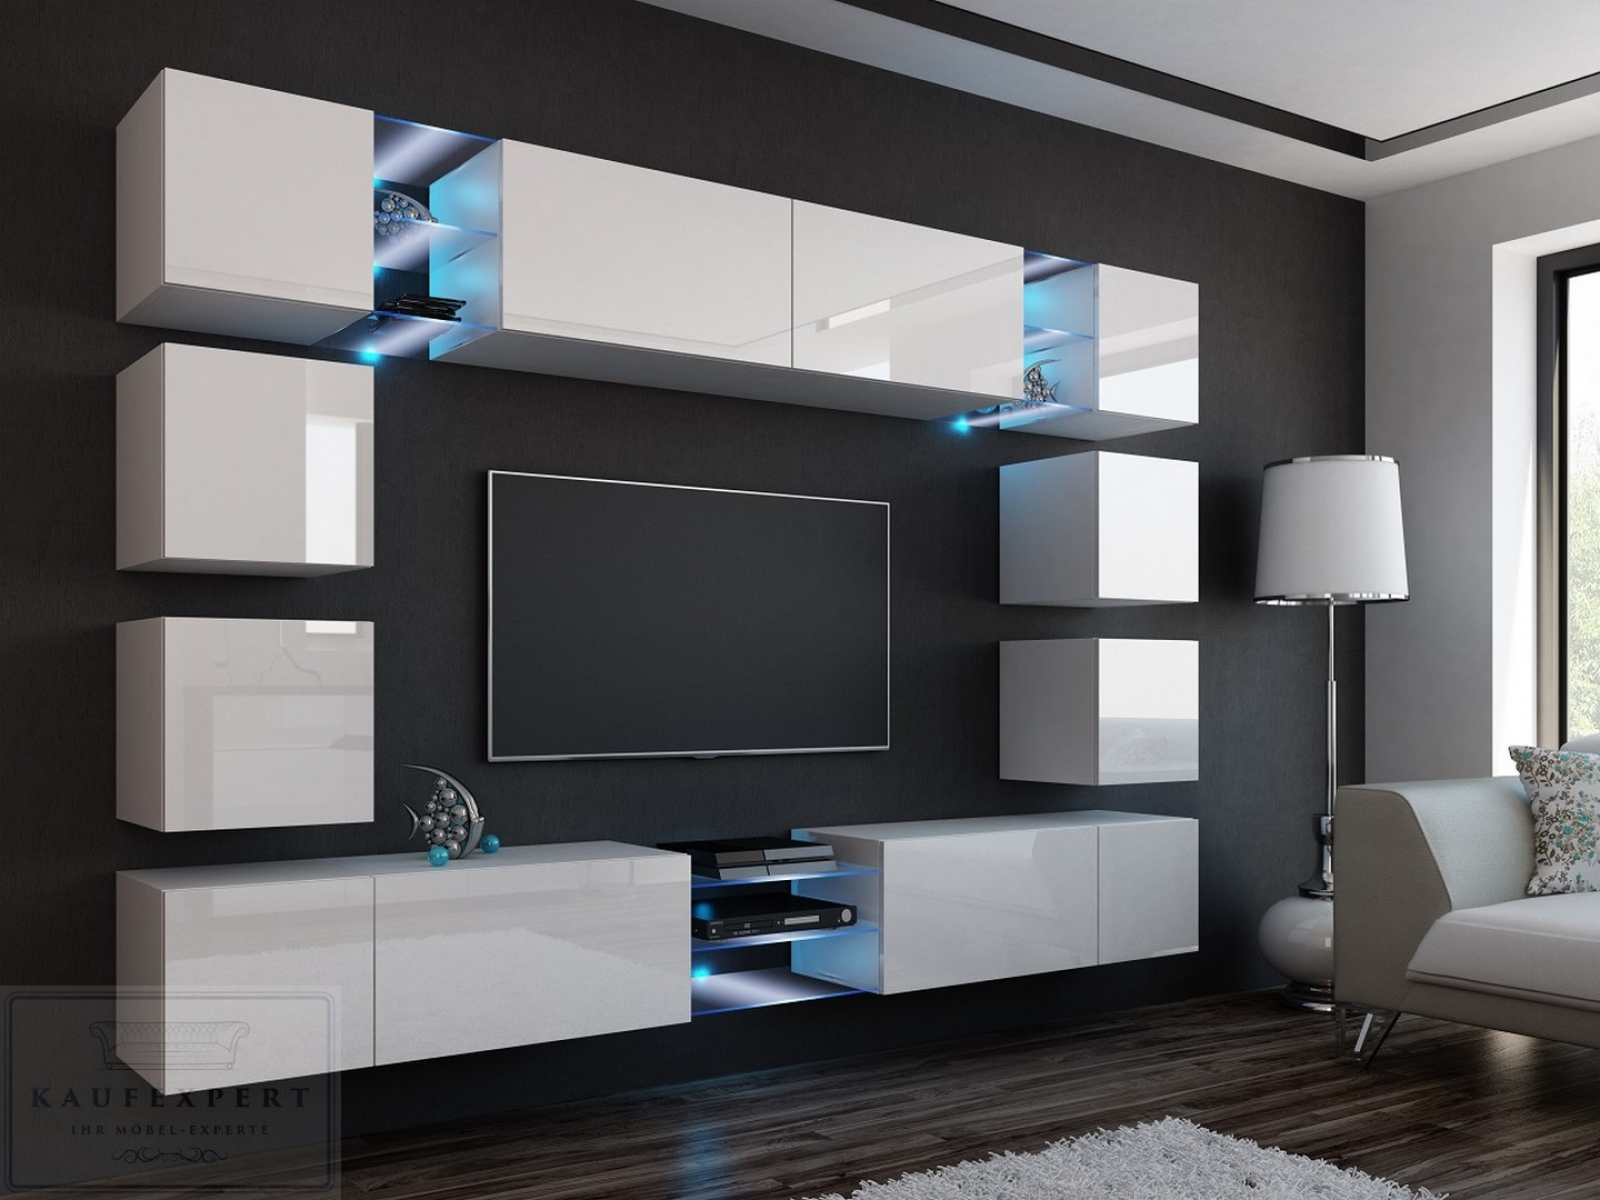 kaufexpert wohnwand edge wei hochglanz mediawand medienwand design modern led beleuchtung mdf. Black Bedroom Furniture Sets. Home Design Ideas